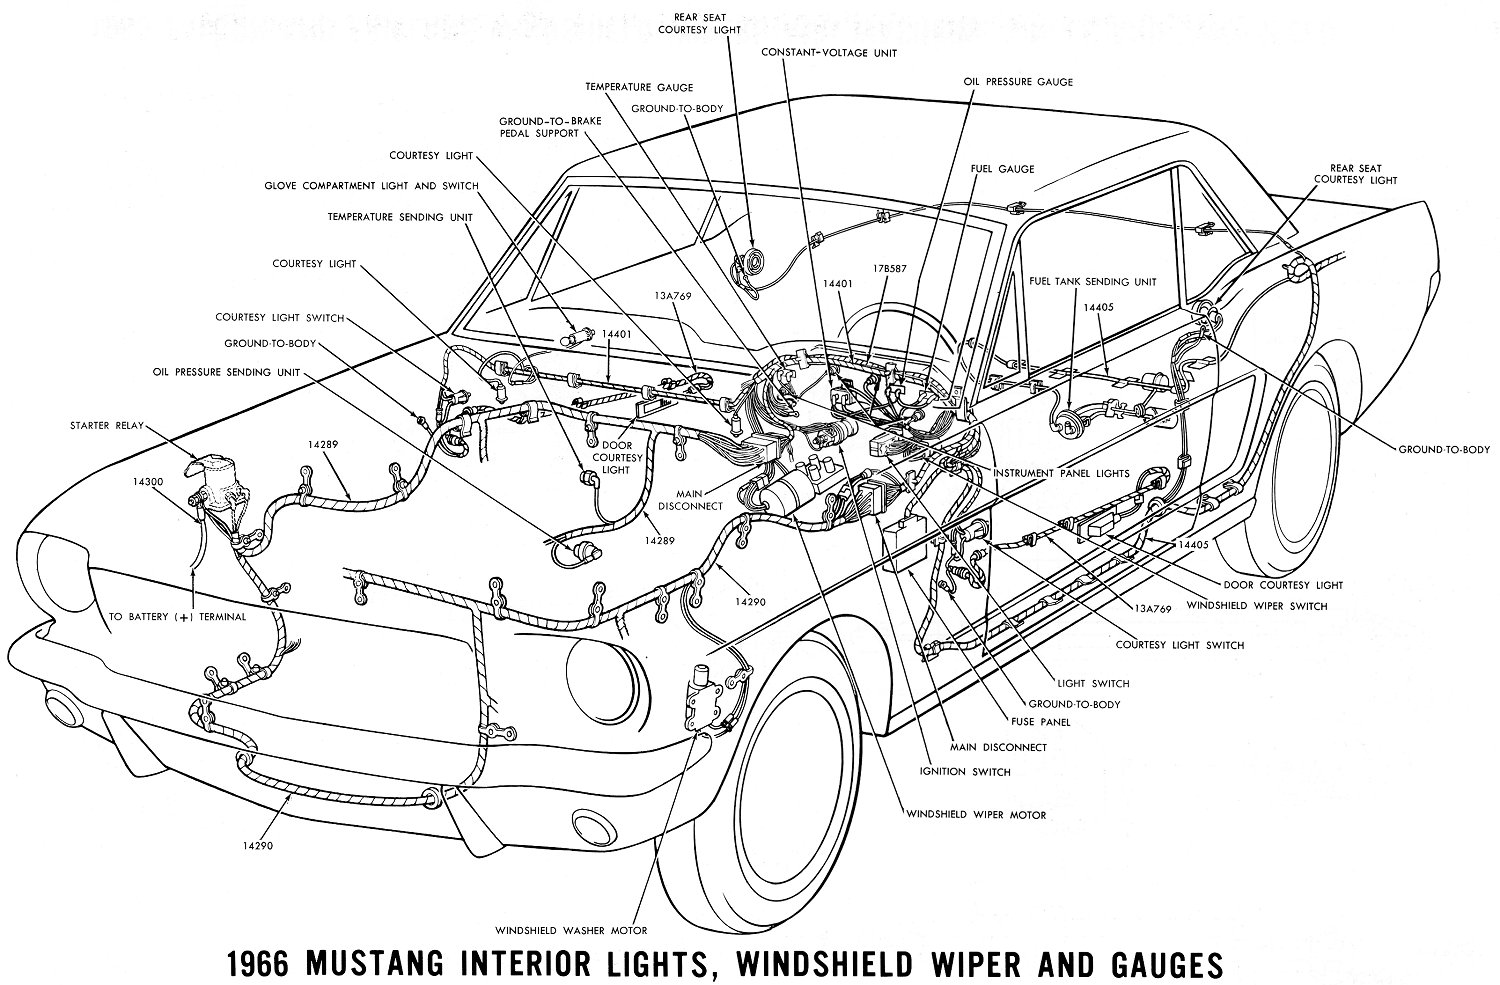 1969 Mustang Back End Wiring Diagram - House Wiring Diagram Symbols •